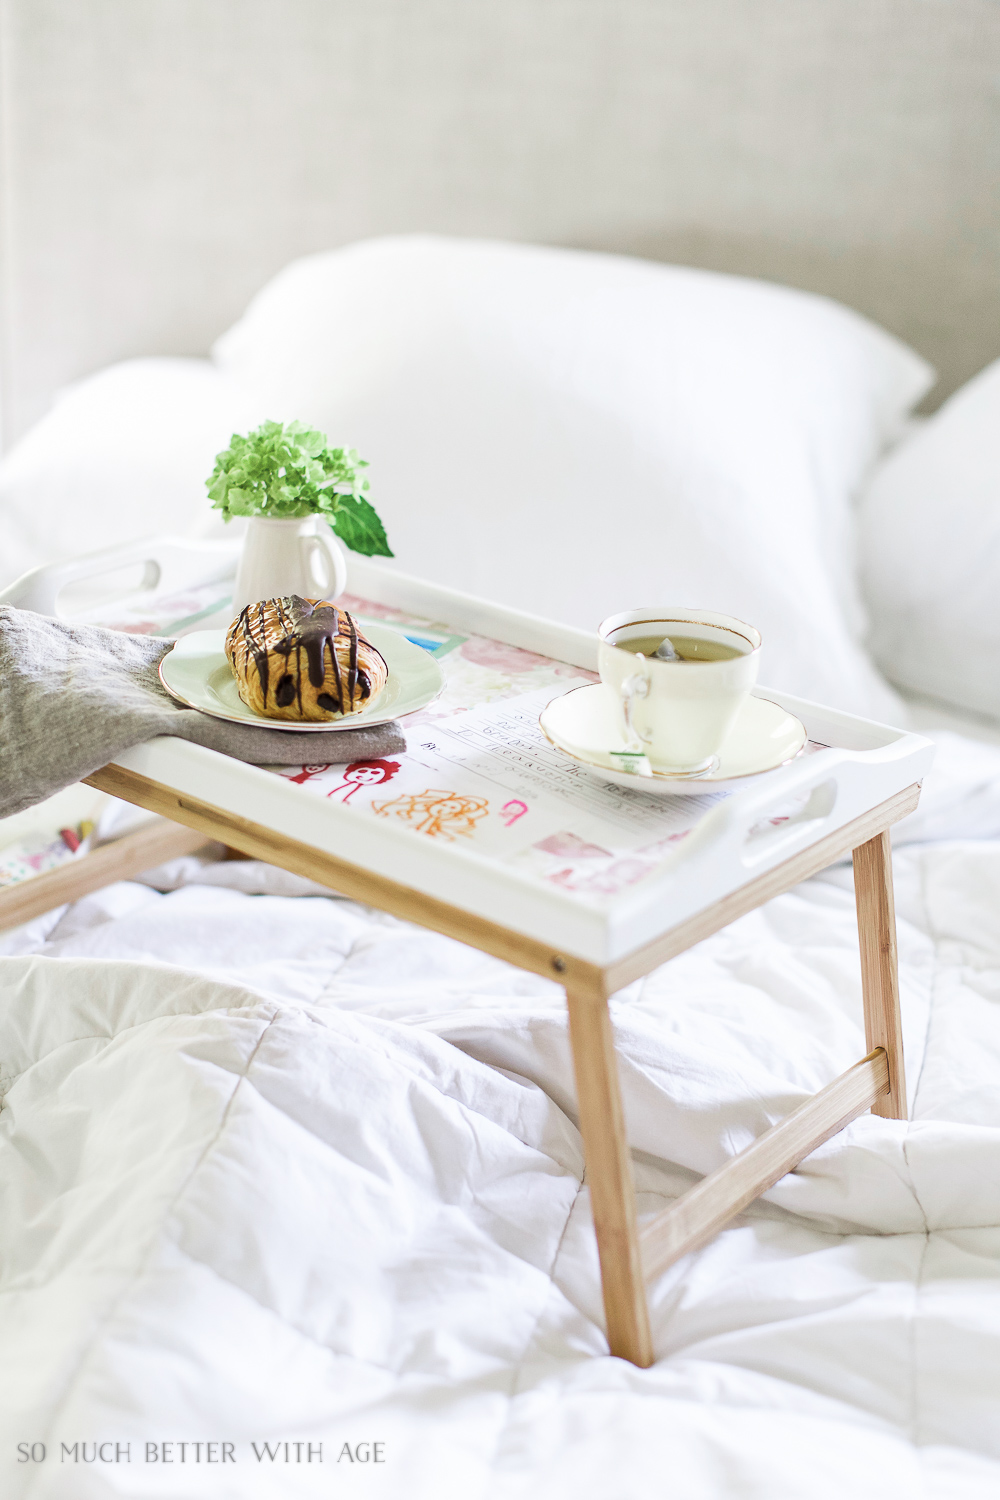 Mother S Day Breakfast In Bed Tray With Decoupaged Kids Art So Much Better With Age